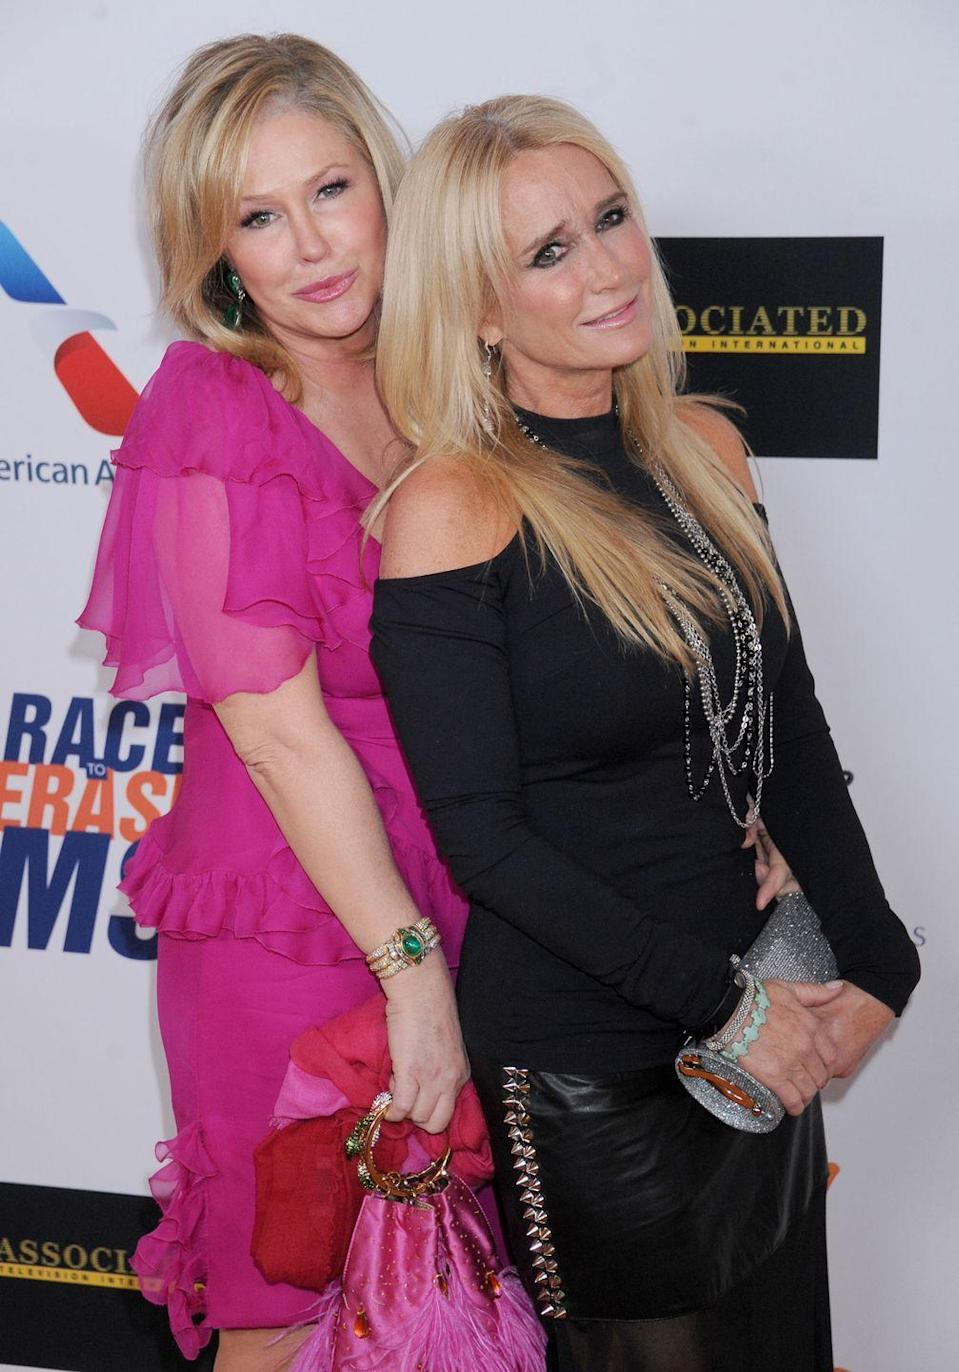 <p>Kathy Hilton is the oldest of the Richards sisters (their third sister is <em>Real Housewives of Beverly Hills </em>star Kyle Richards) and we see the most similarities between her and former child actress, Kim. From their nose to their coloring, the two are nearly identical despite being six years apart. </p>